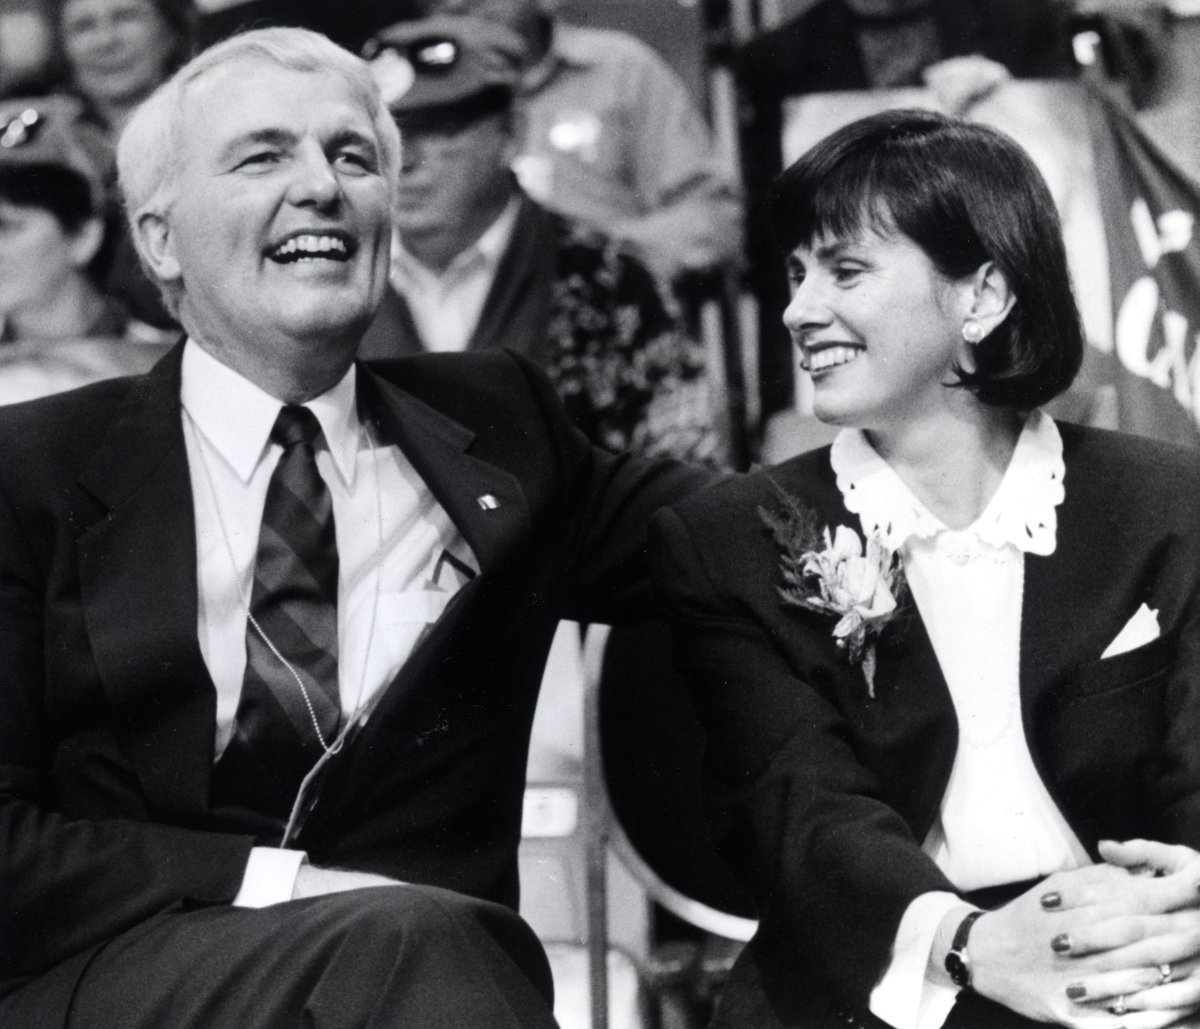 Dec 27, 1991 - Since he was elected leader of the Nova Scotia conservative party last February Premier Donald Cameron (shown with his wife Rosemary) has been preaching reform.